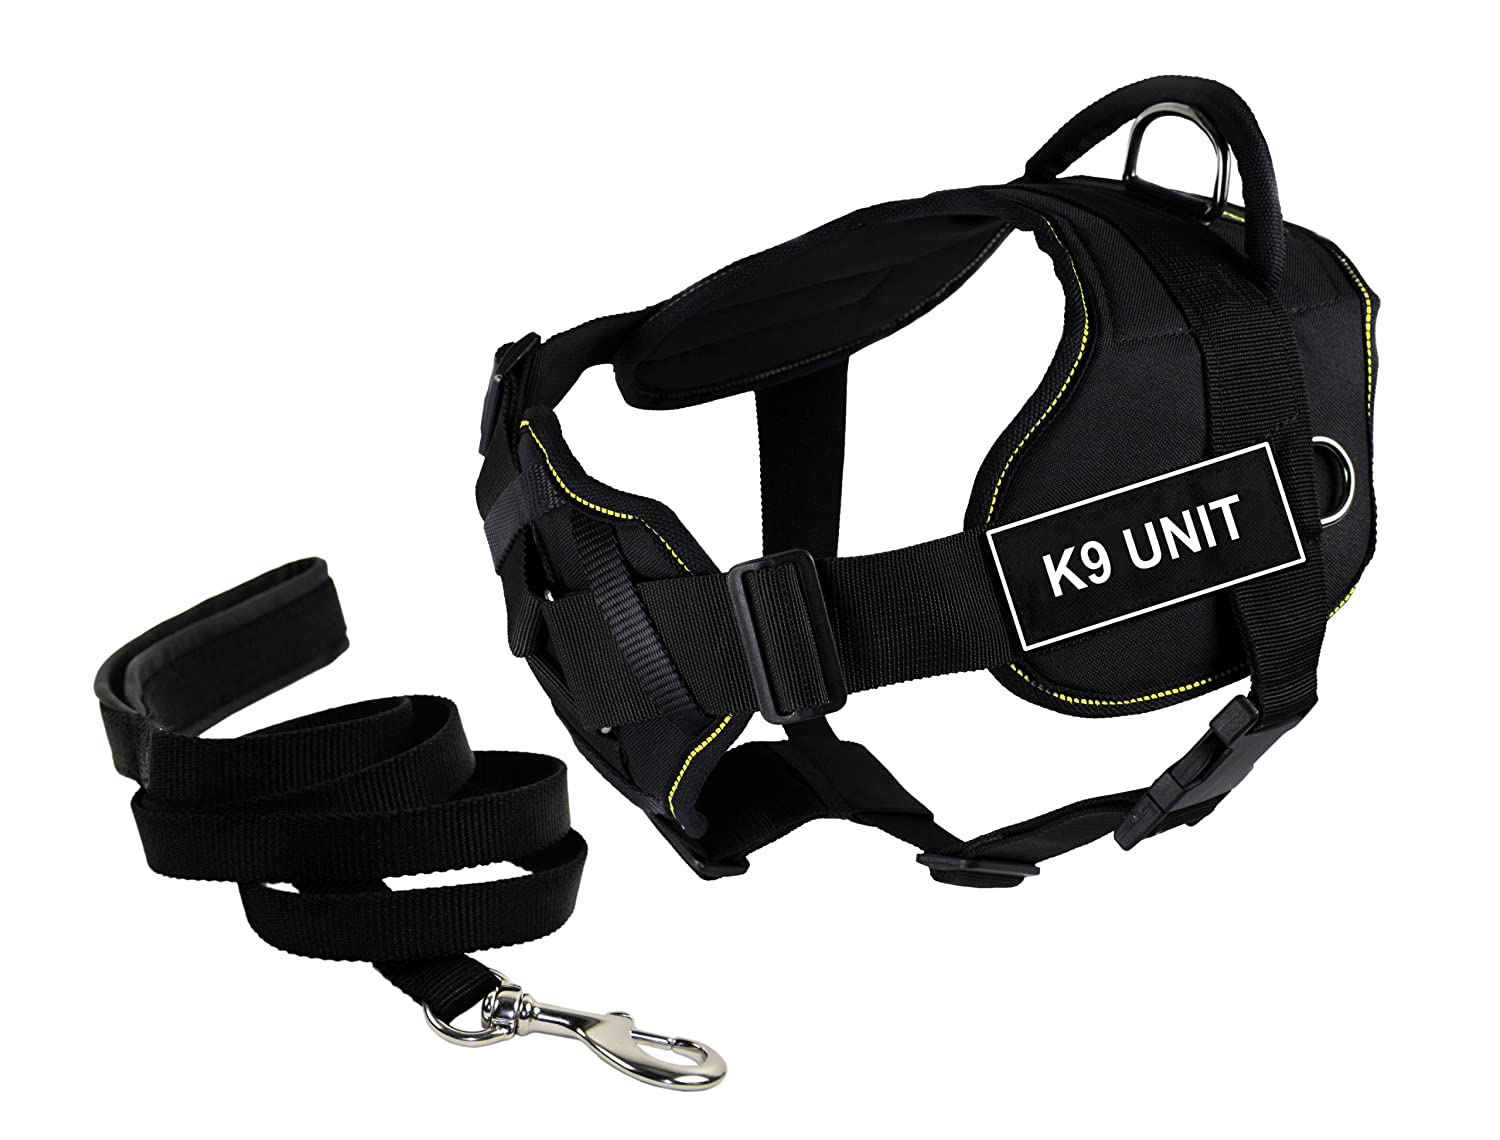 Dean & Tyler's DT Fun Chest Support K9 UNIT Harness, Large, with 6 ft Padded Puppy Leash.